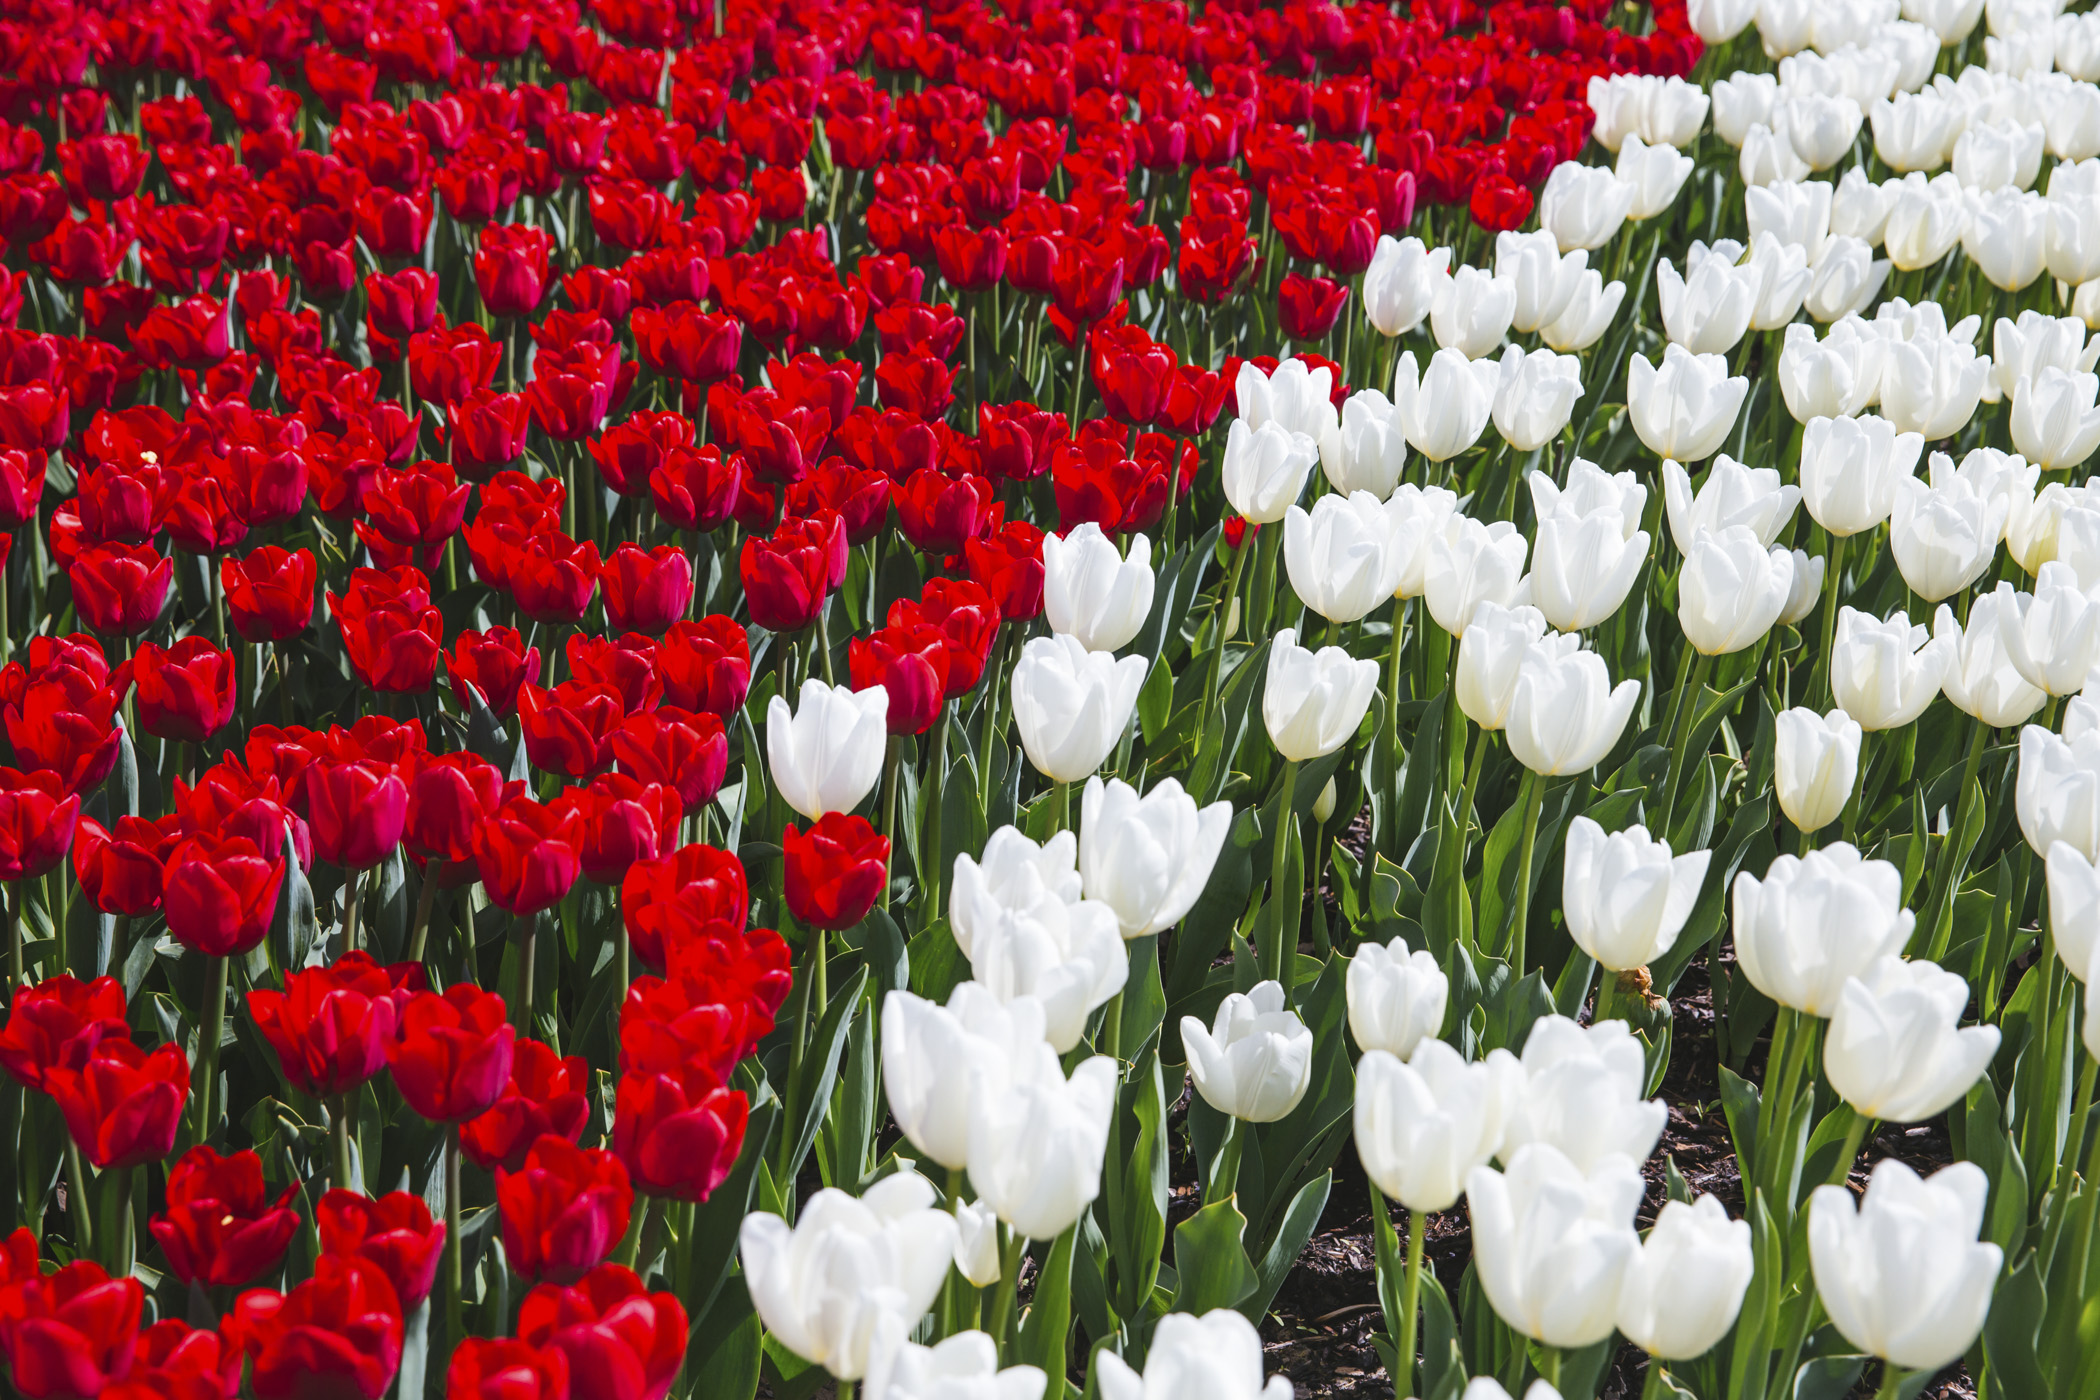 It's tulip season! Each year thousands of people come to visit the million+ tulips at the Skagit Valley Tulip Festival, which runs the entire month of April. (Image: Sunita Martini / Seattle Refined).